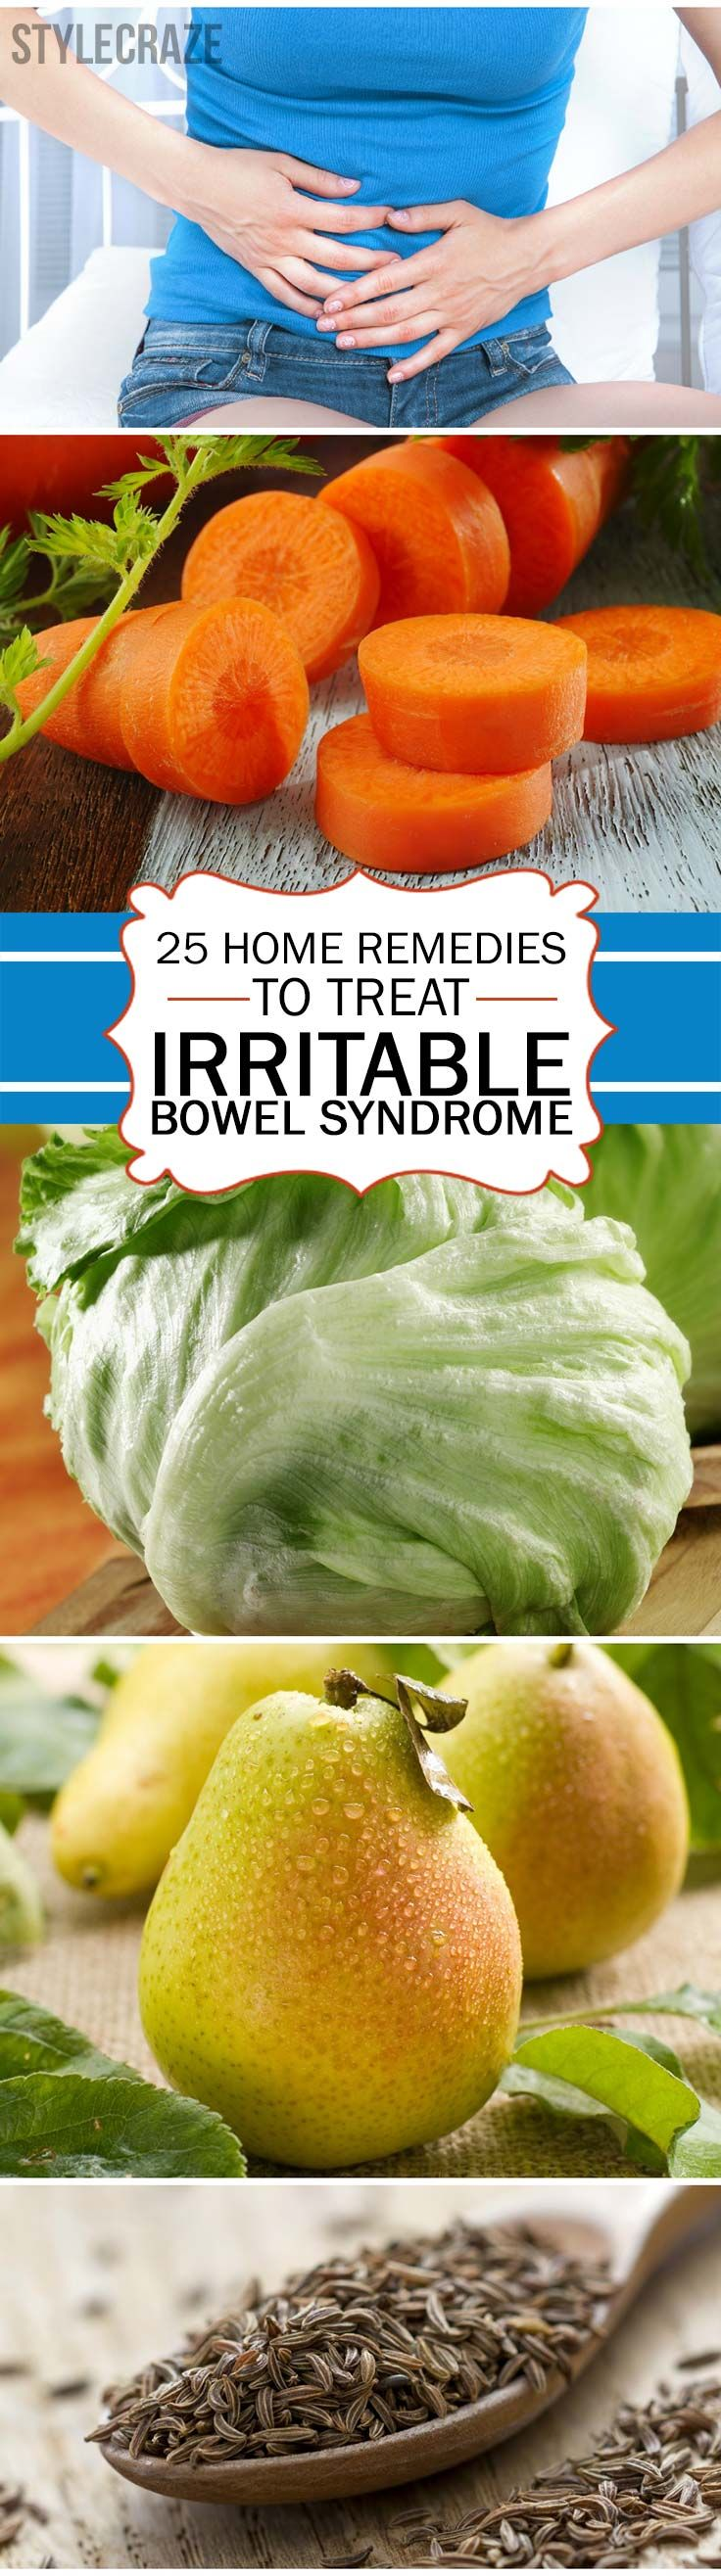 Irritable Bowel Syndrome: Controlling Symptoms With Diet